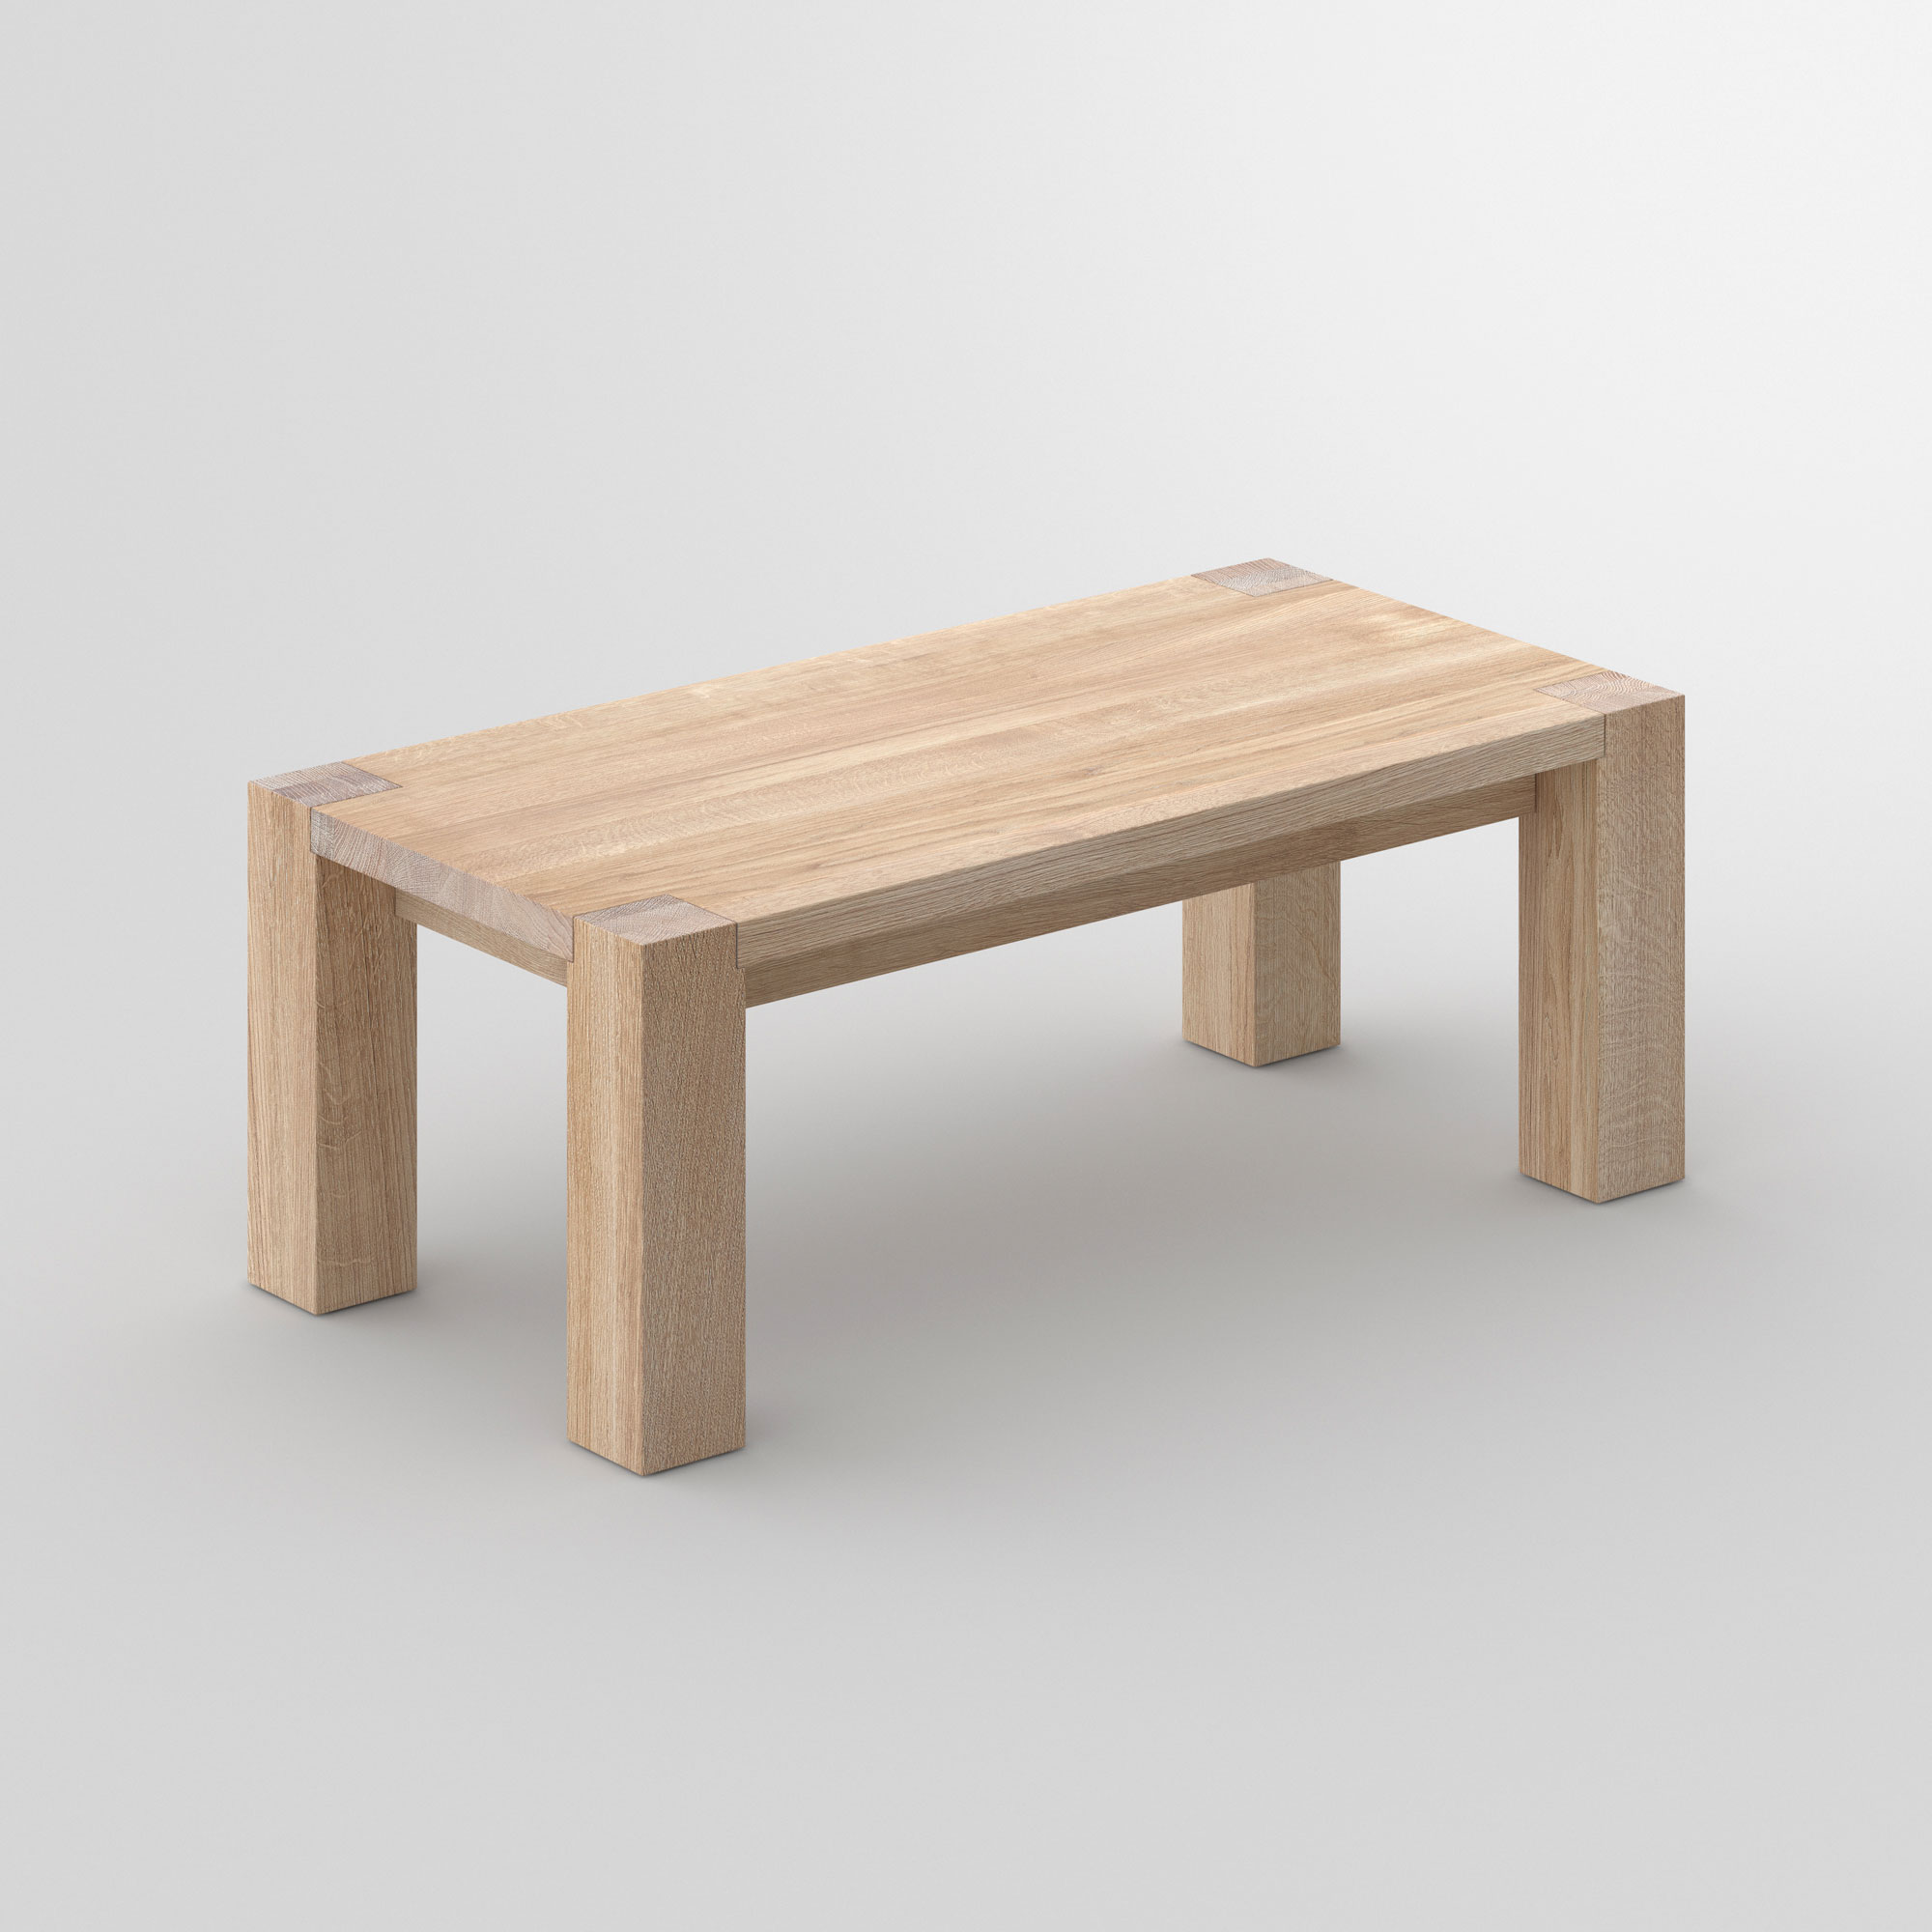 Rustic Oak Coffee Table TAURUS 4 B11X11